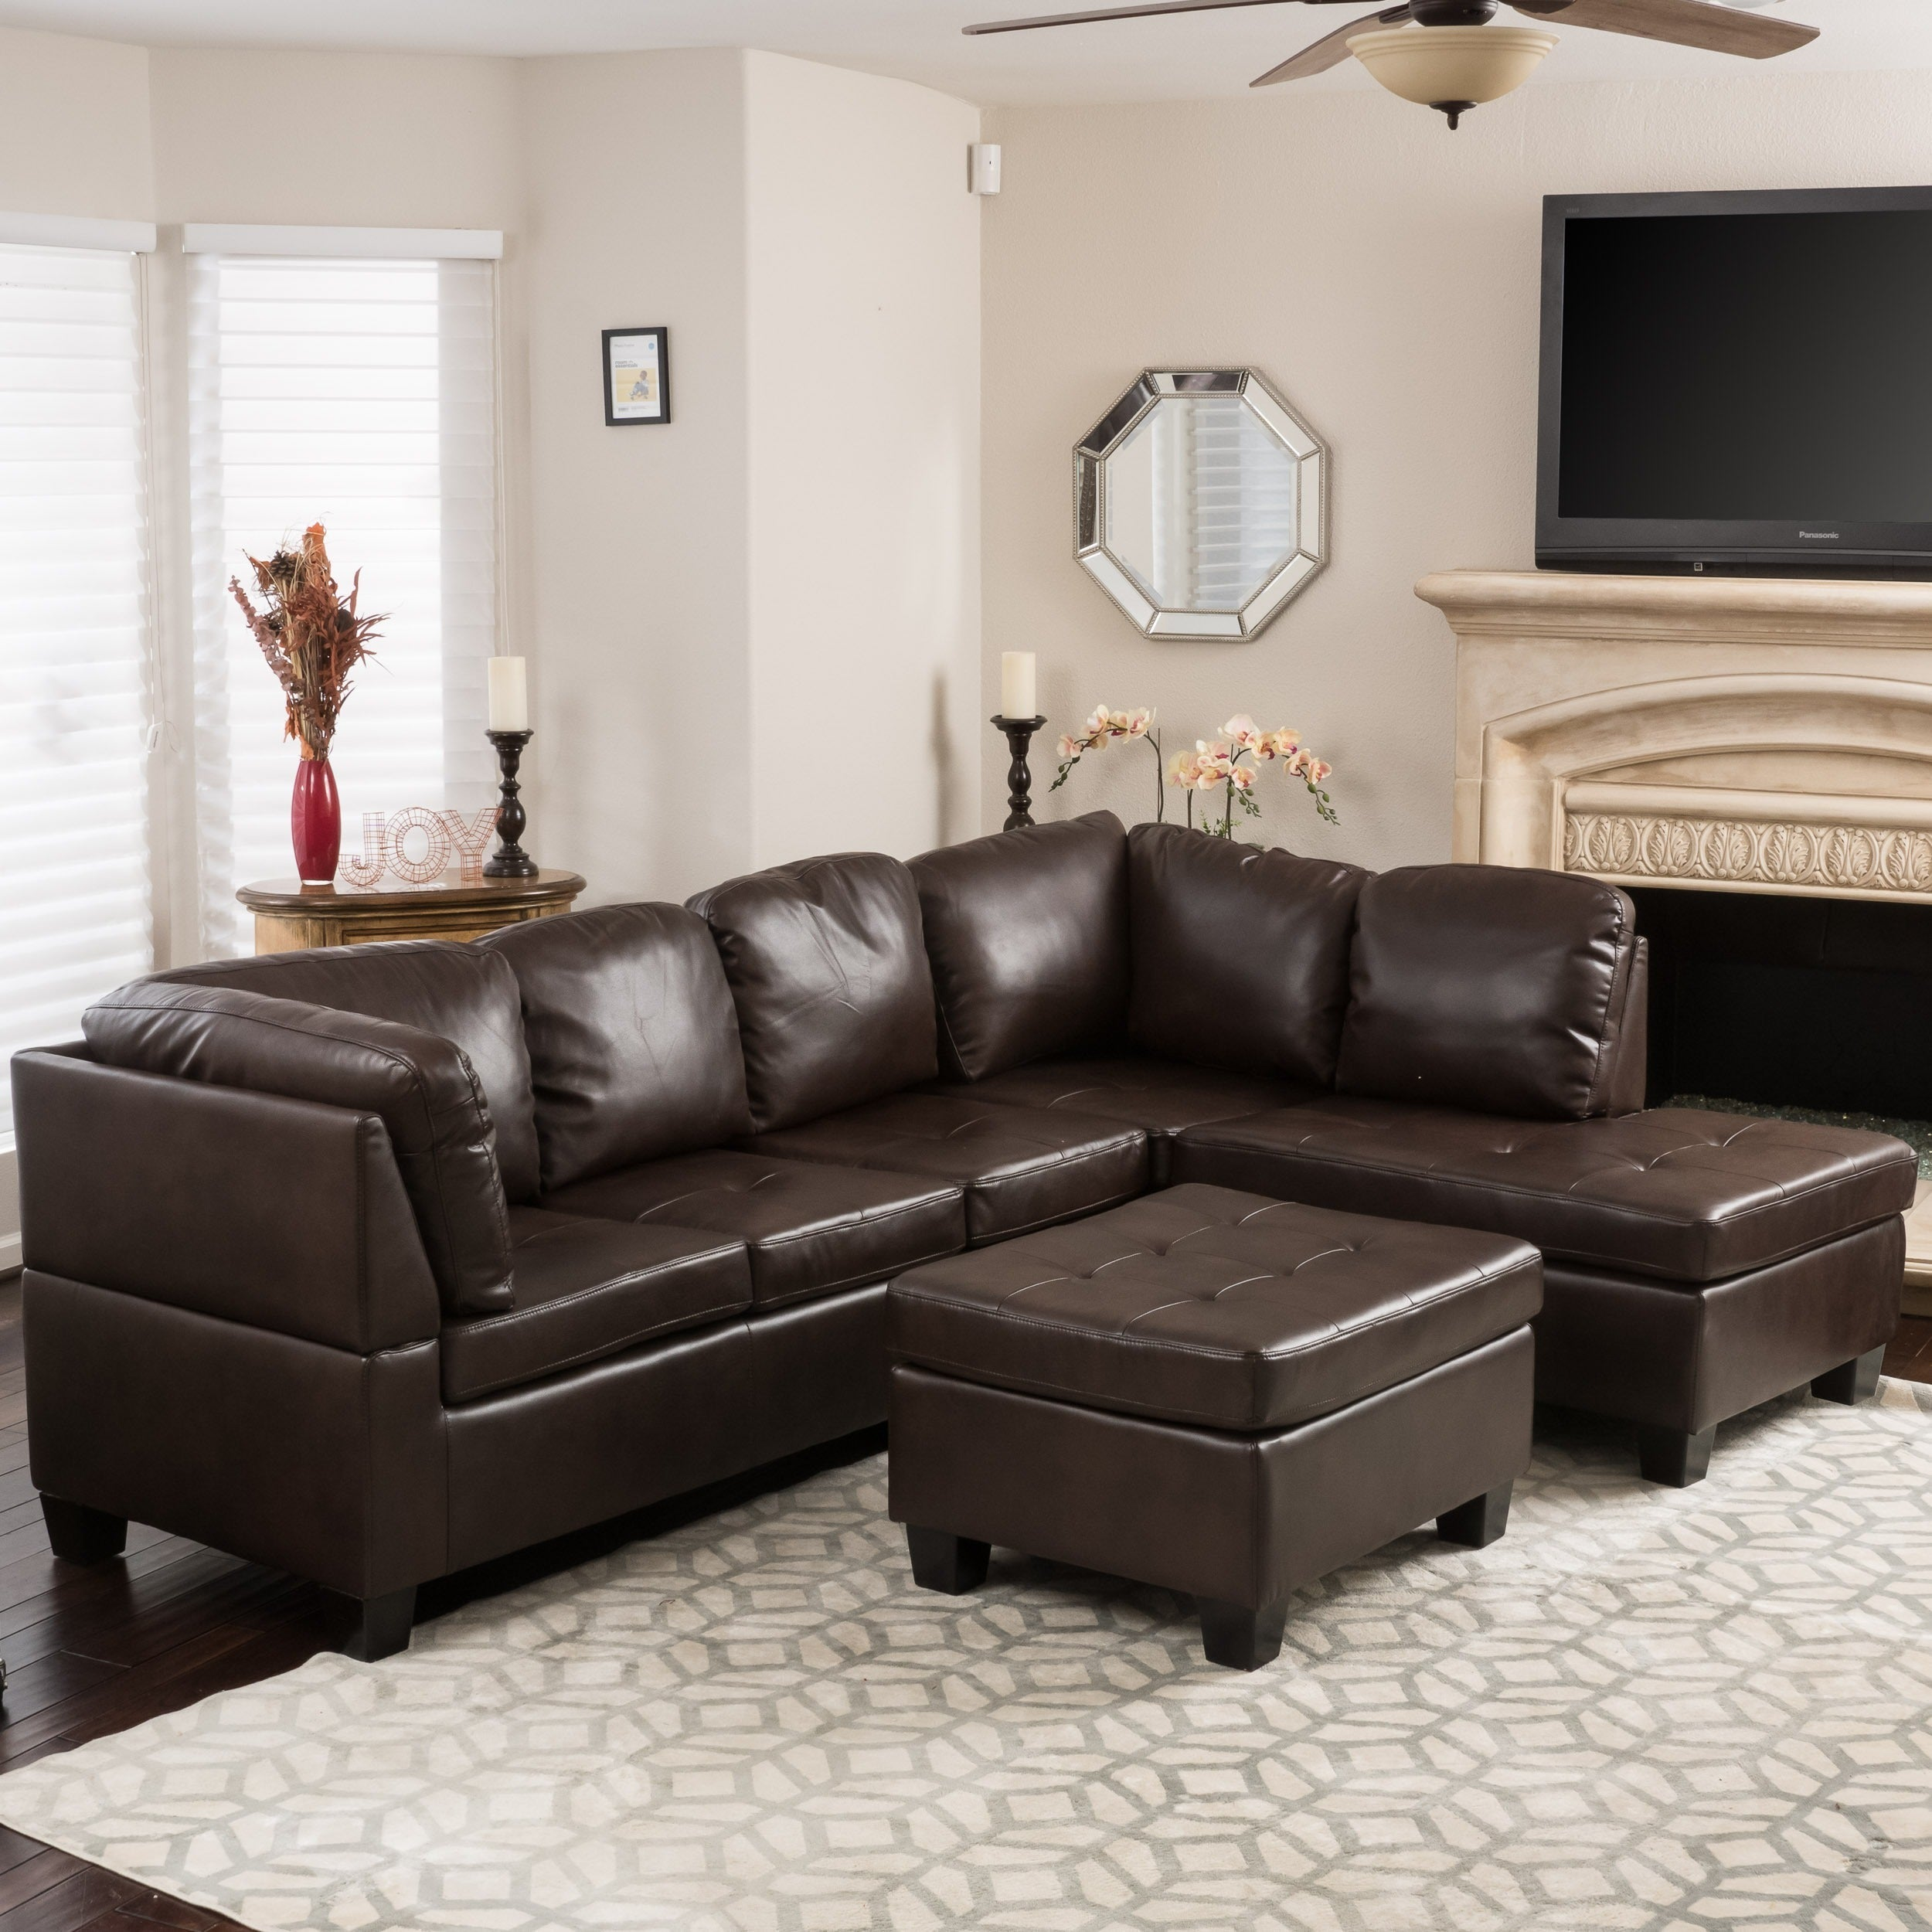 Canterbury 3 Piece PU Leather Sectional Sofa Set By Christopher Knight Home    Free Shipping Today   Overstock   17868550